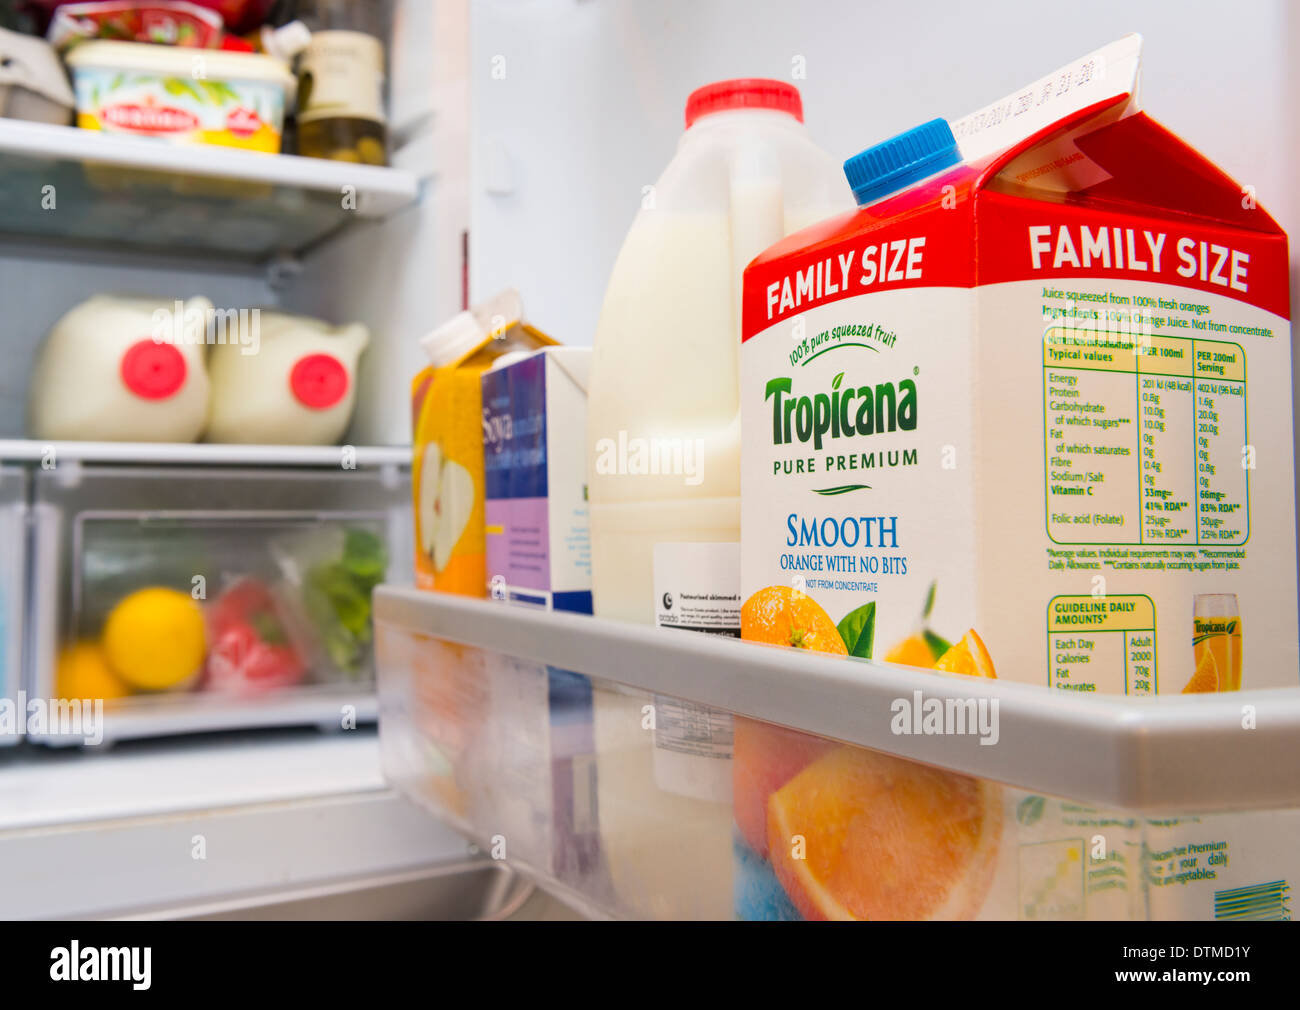 A well stocked fridge - Stock Image